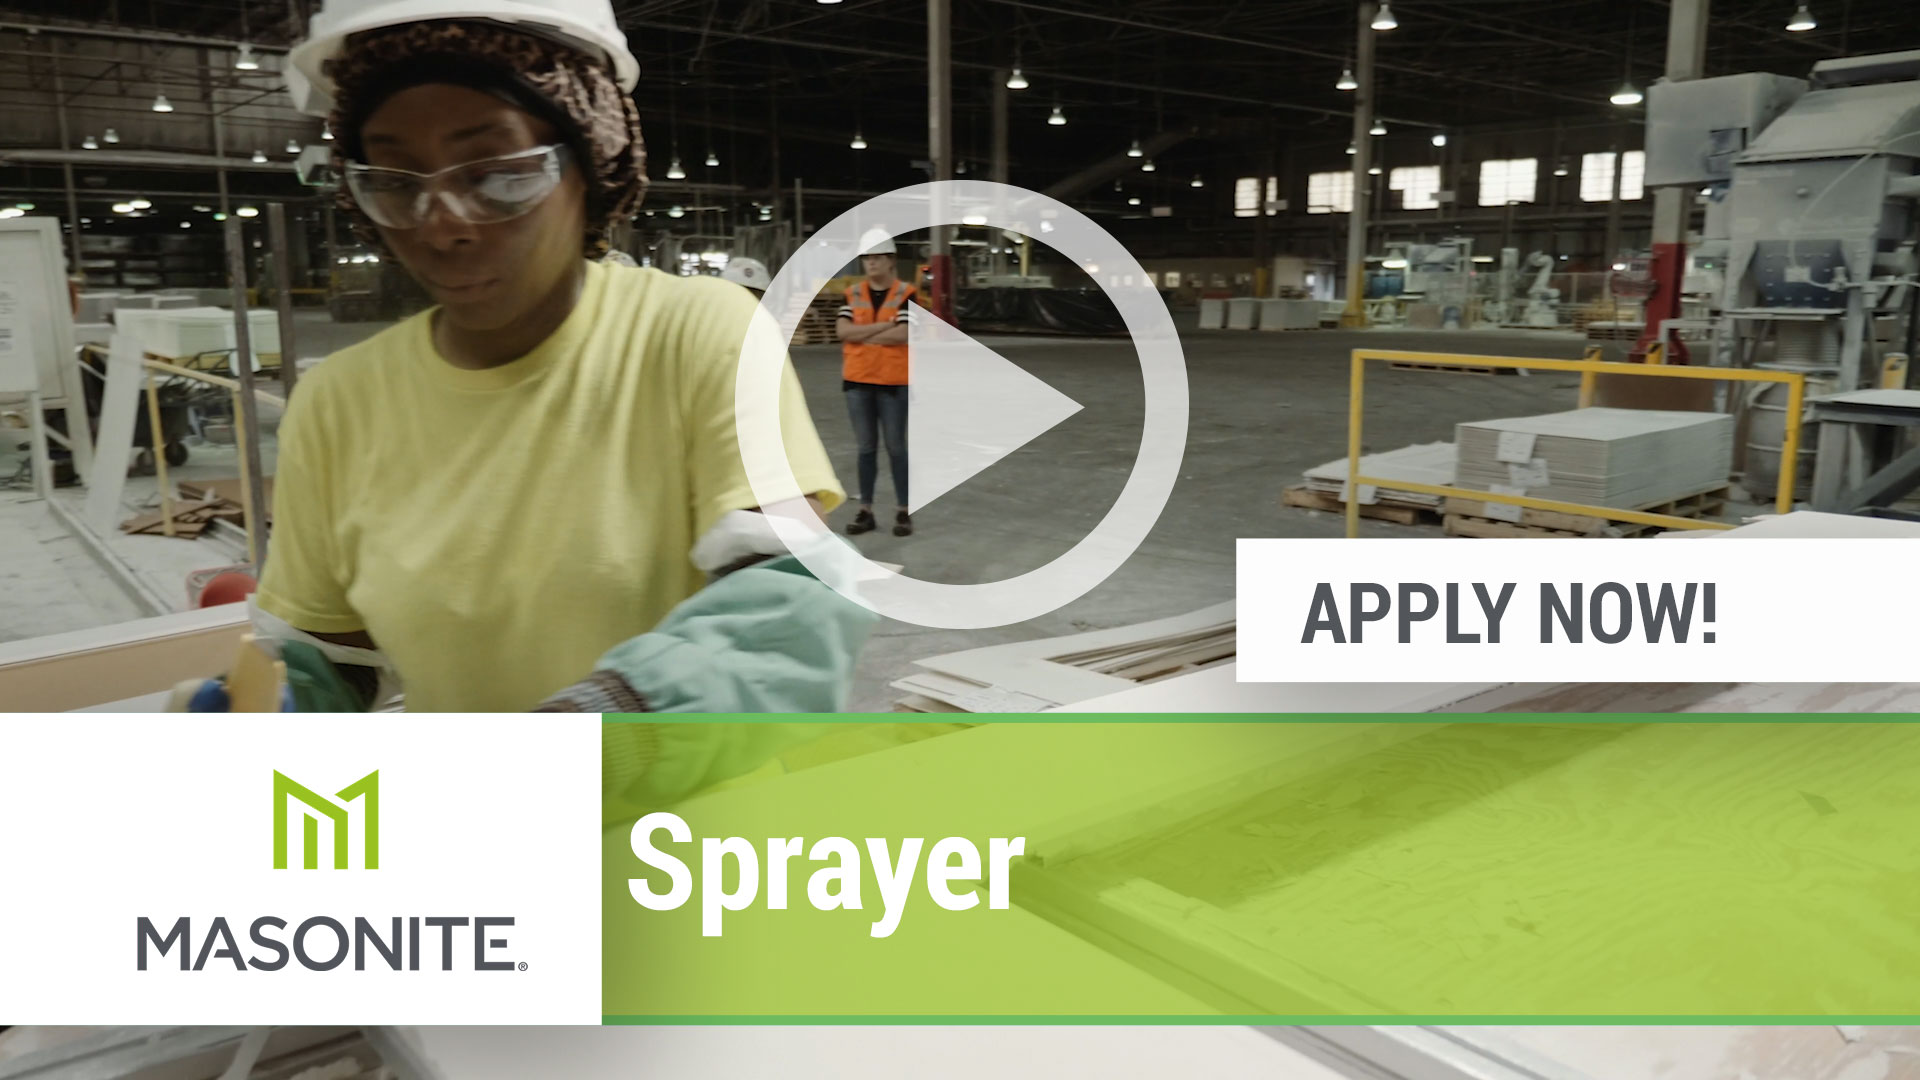 Watch our careers video for available job opening Sprayer in Northumberland, PA, USA